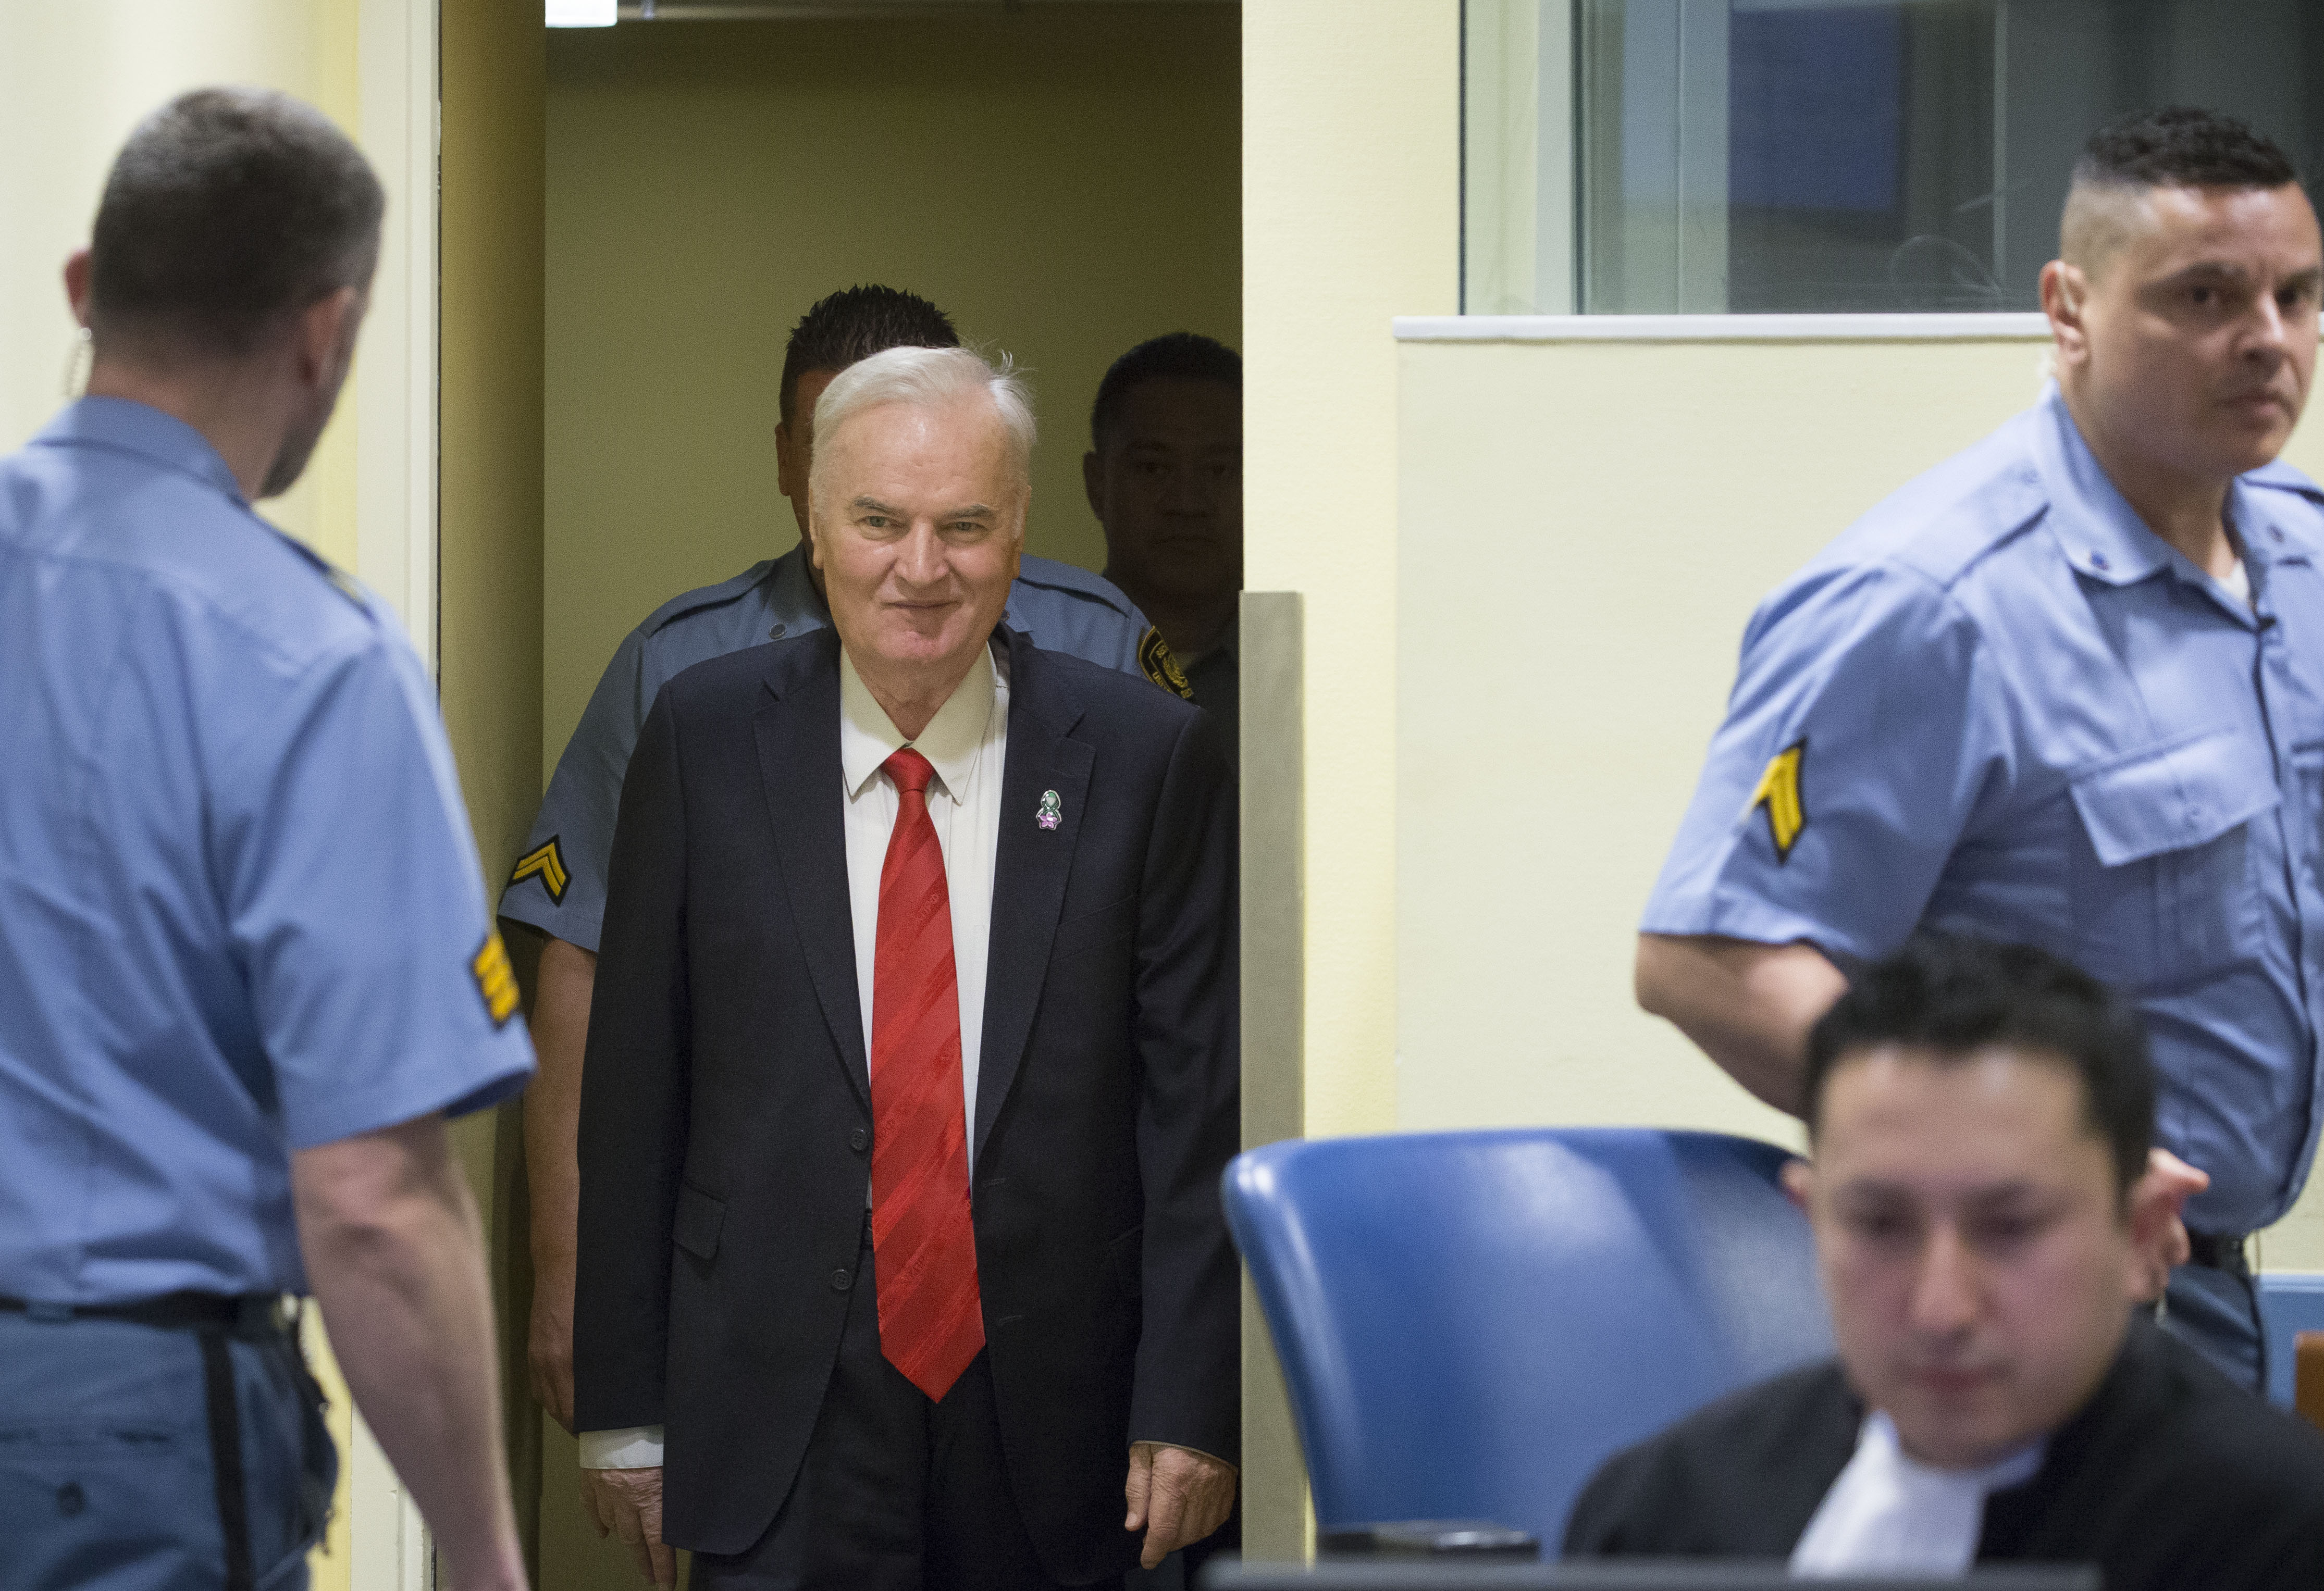 Former Bosnian military chief Ratko Mladic appears for the pronouncement of the Trial Judgement for the International Criminal Tribunal for the former Yugoslavia (ICTY). Mladic is dubbed the  Butcher of Bosnia.